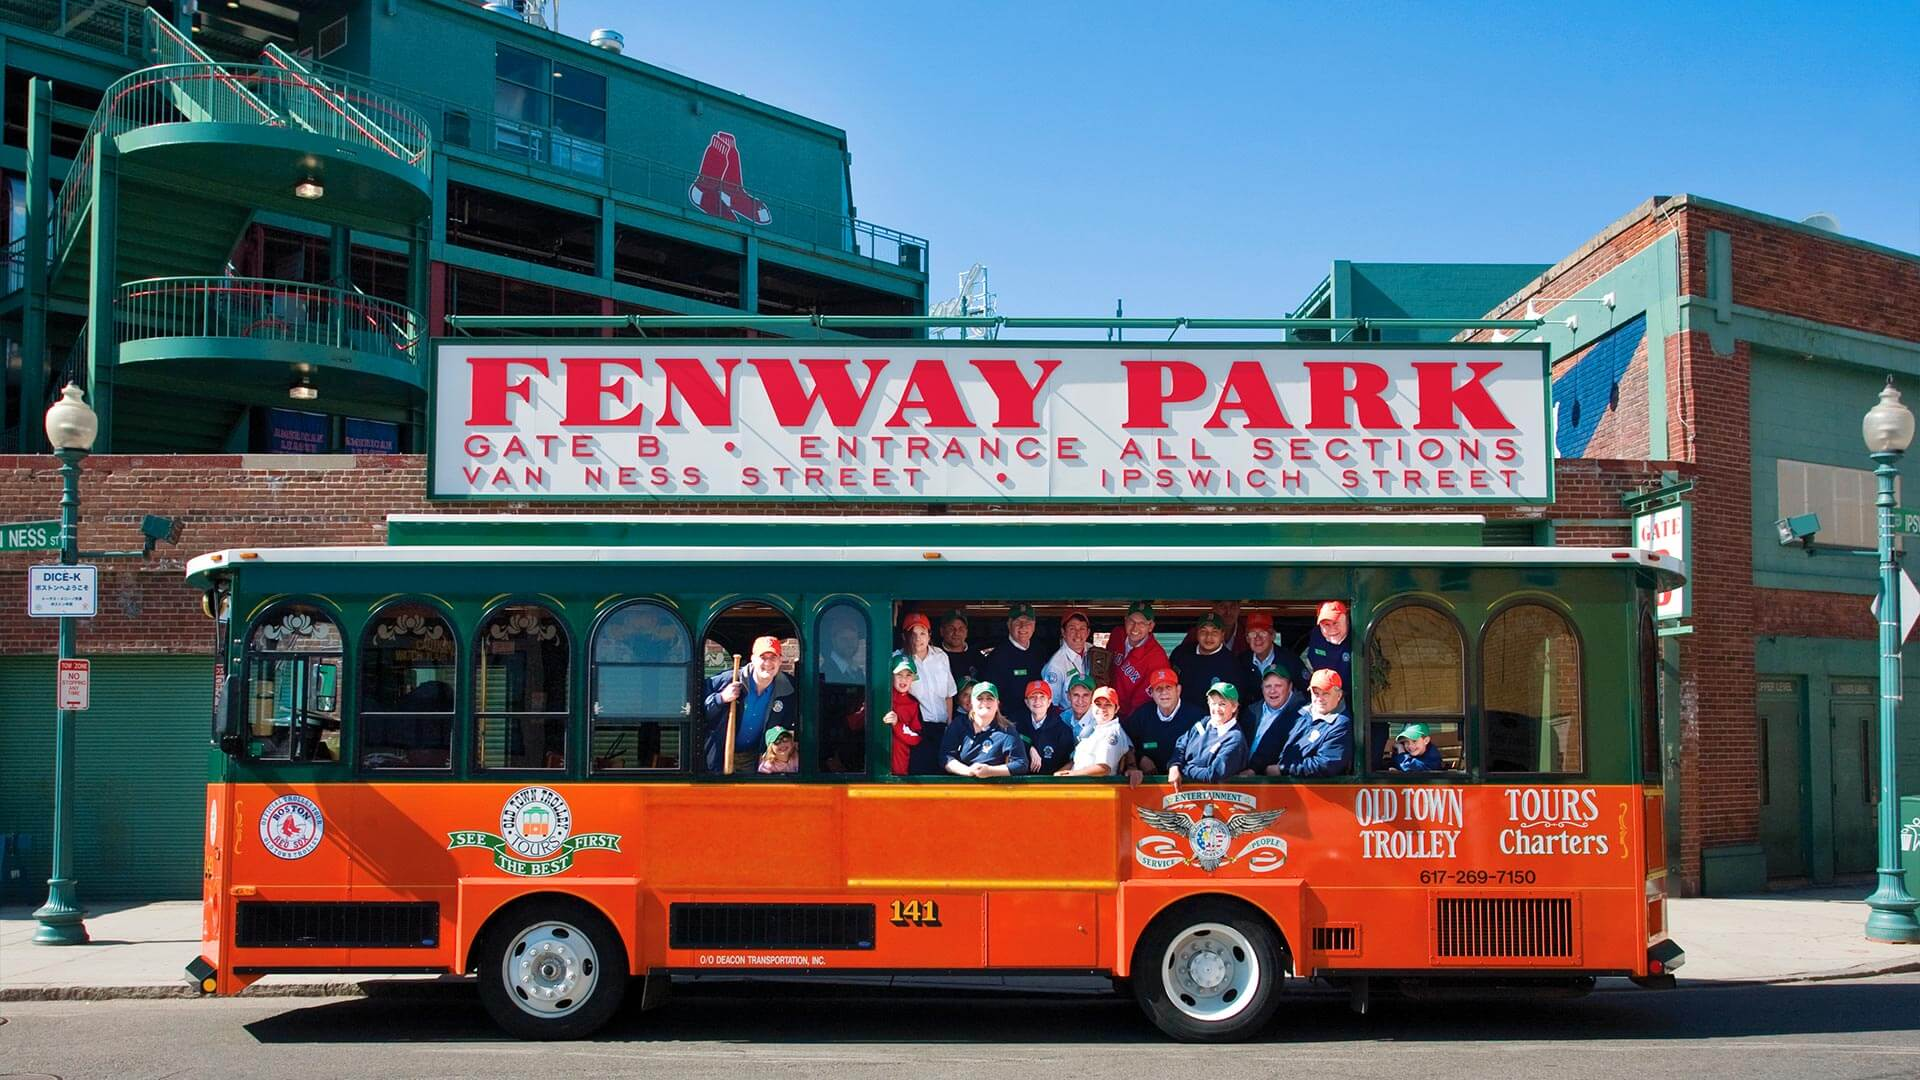 Smiling tourist waving inside an Old Town Trolley that's passing by Fenway Park in Boston